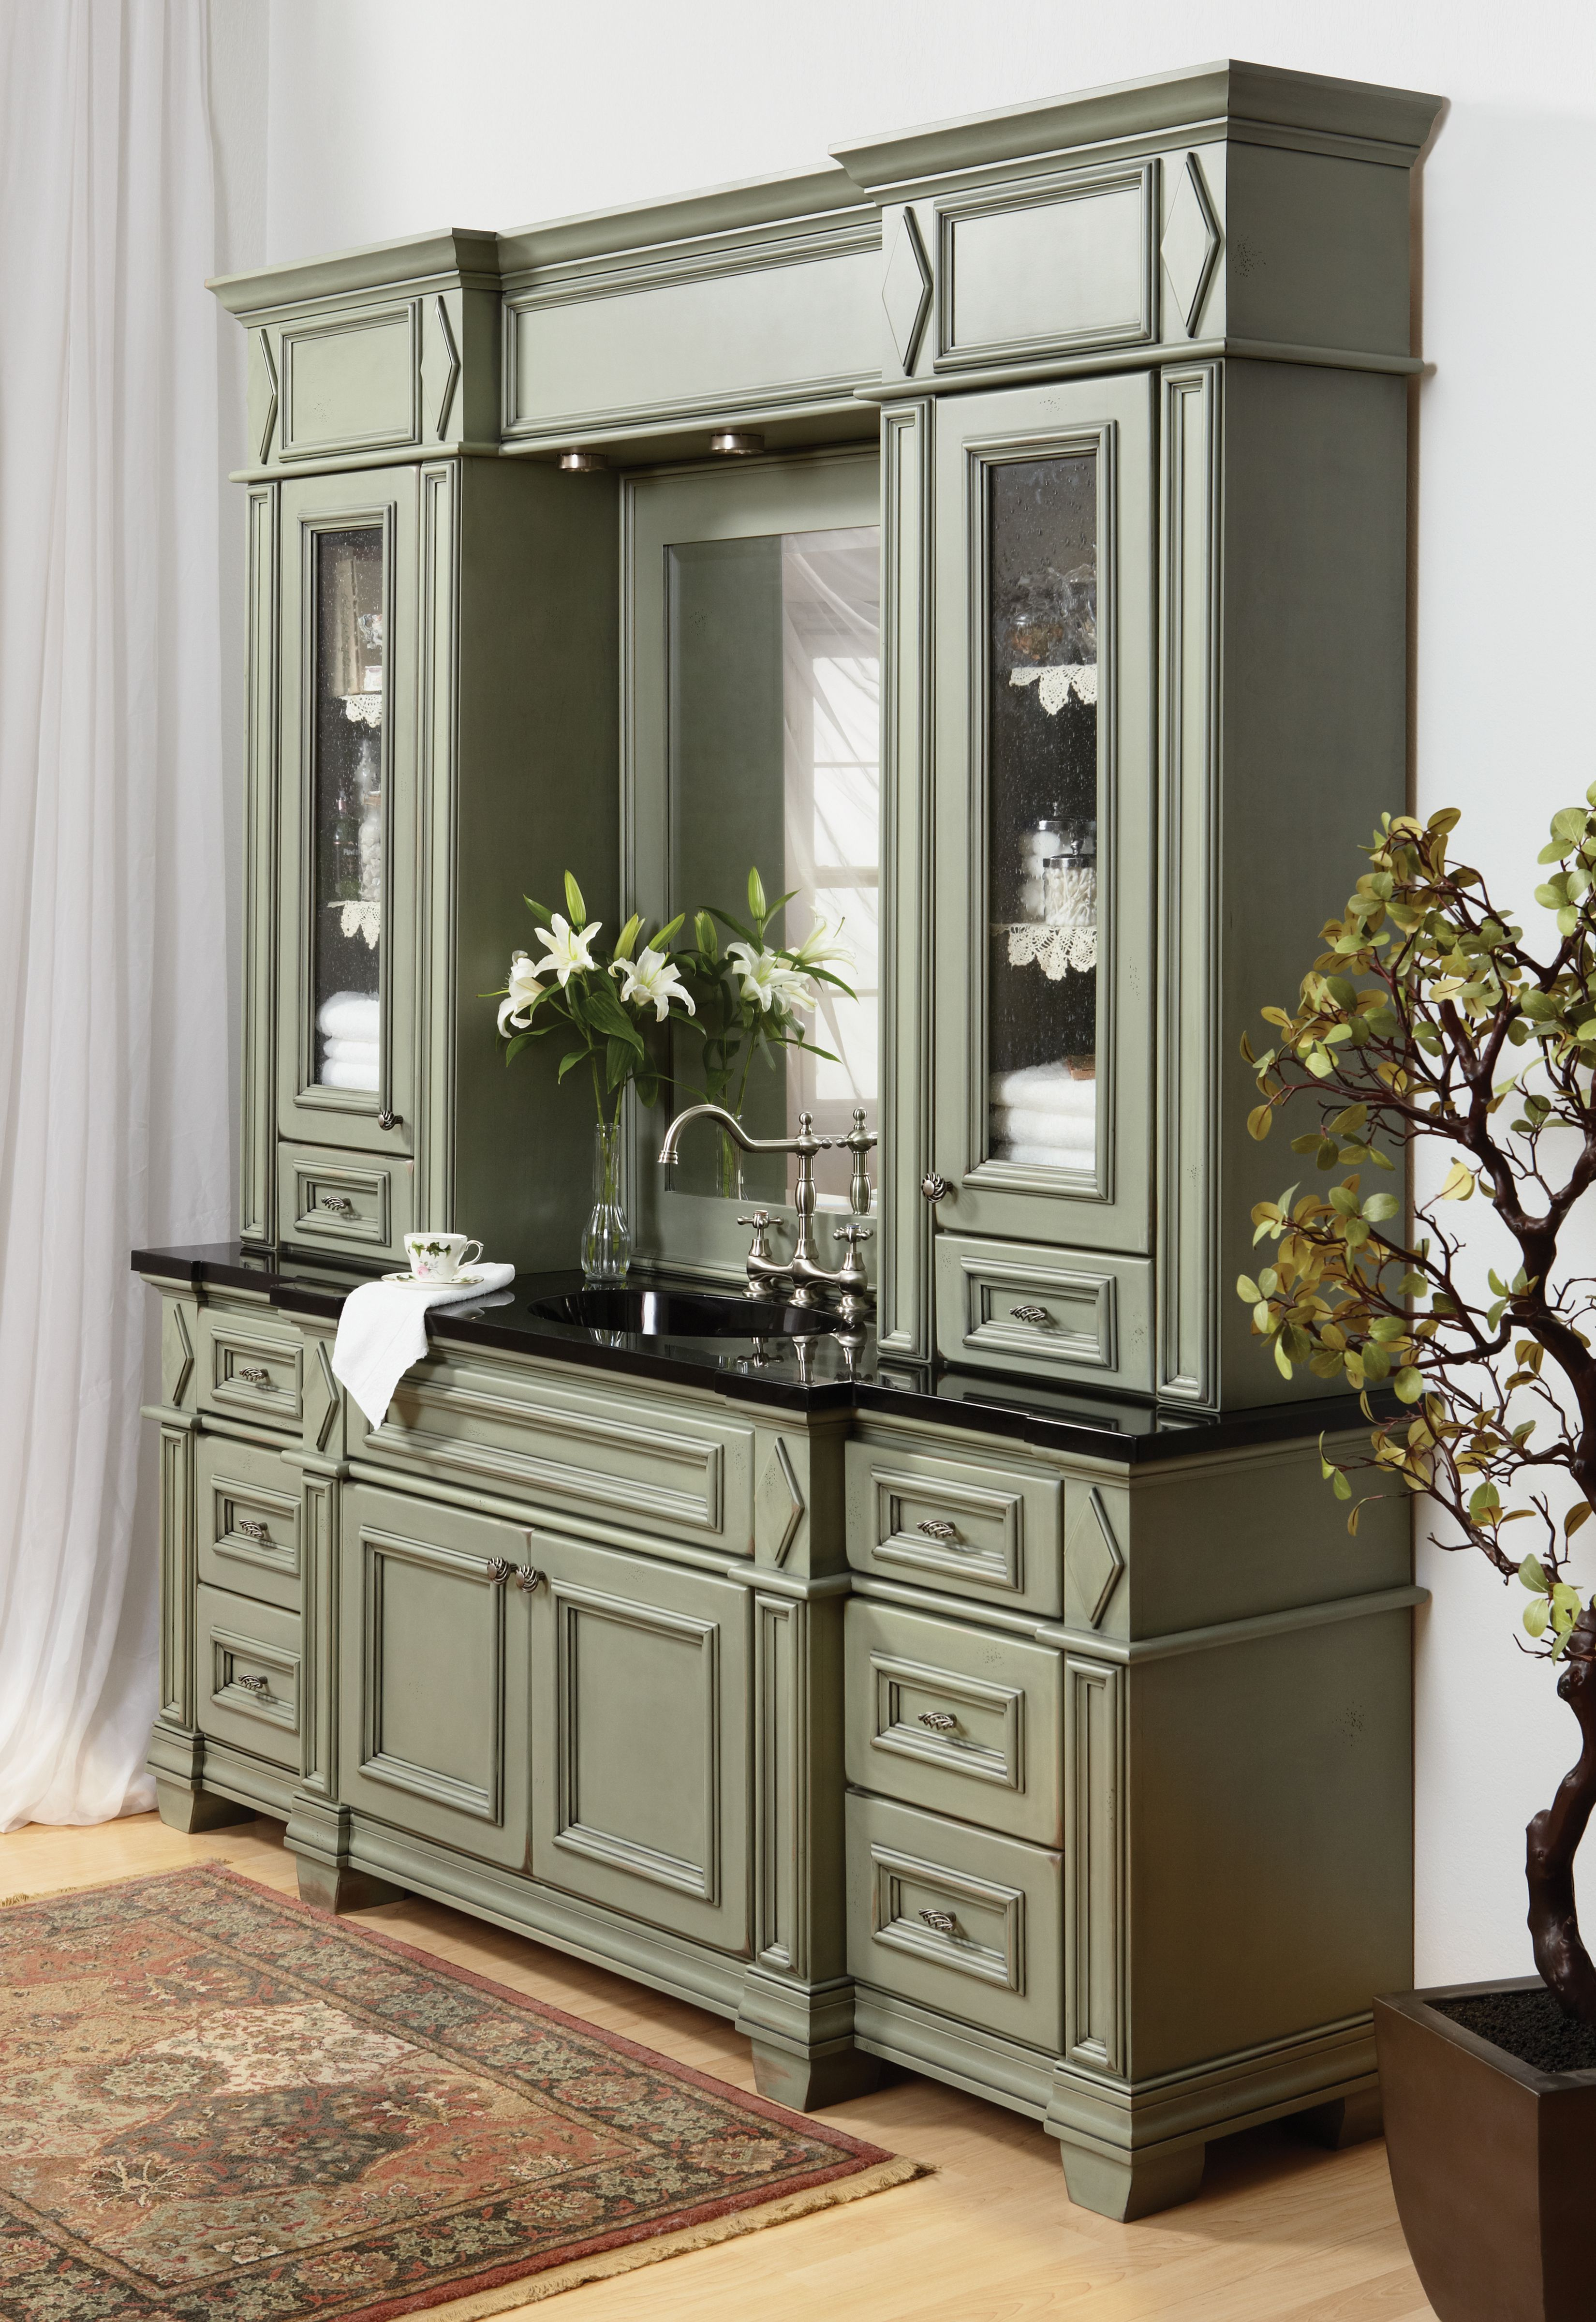 Bathroom vanities minneapolis - If You Re Remodeling Your Bathroom One Of The Best Choices On The Market Is Bertch Bath Vanities Cabinets Minneapolis Granite Has A Wide Selection